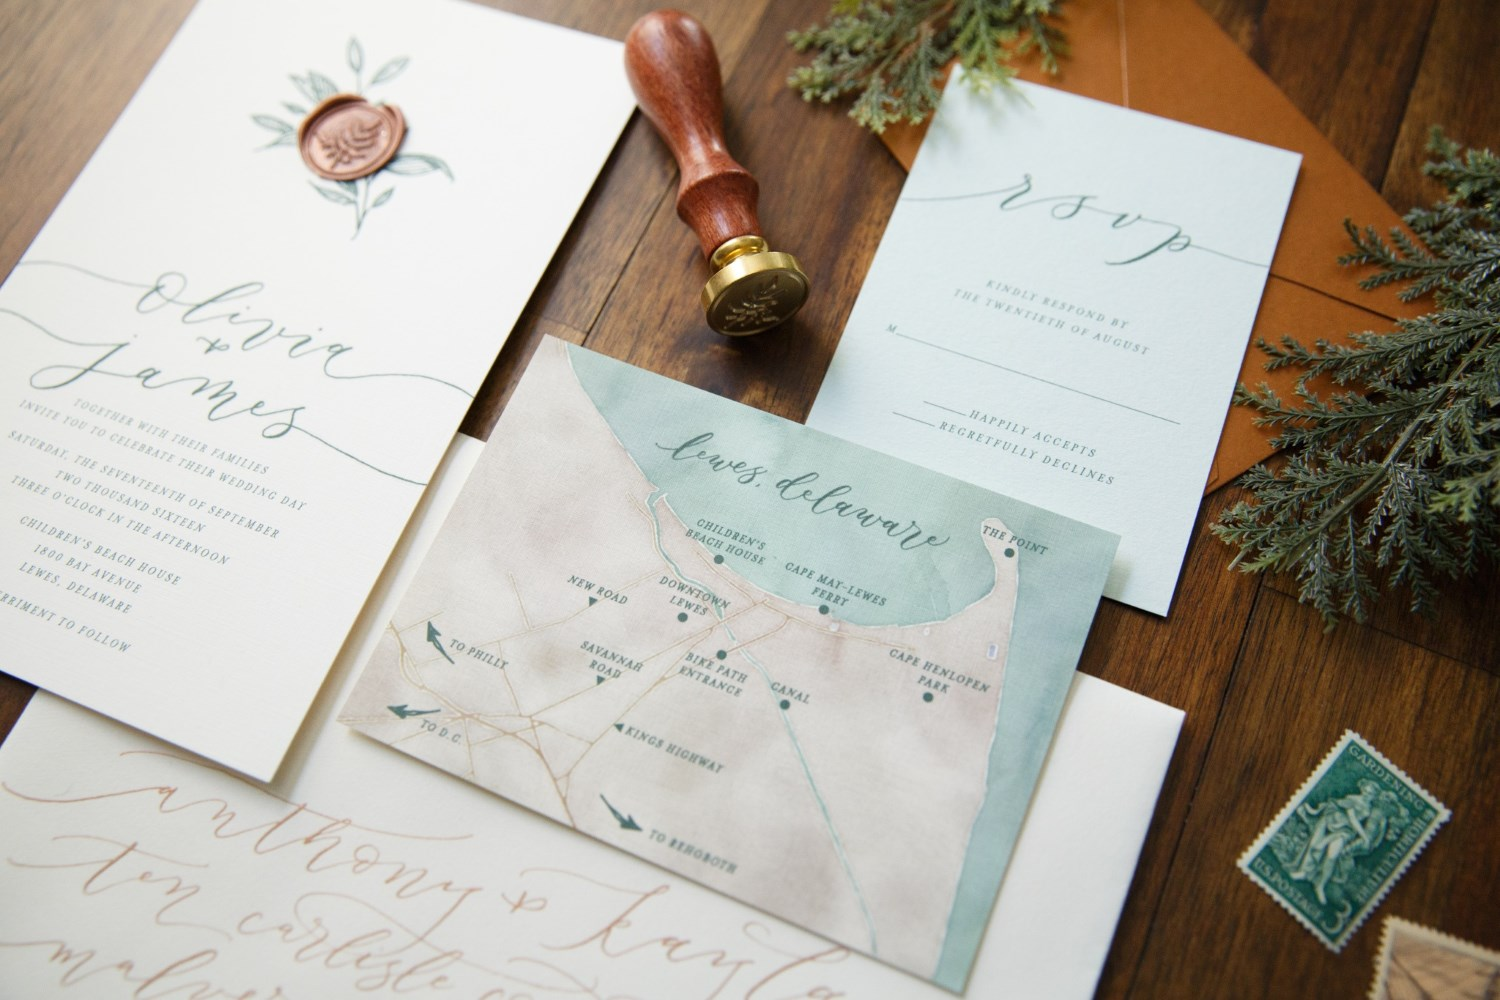 EARTHY ROMANCE WEDDING INVITATIONS PHOTO 5